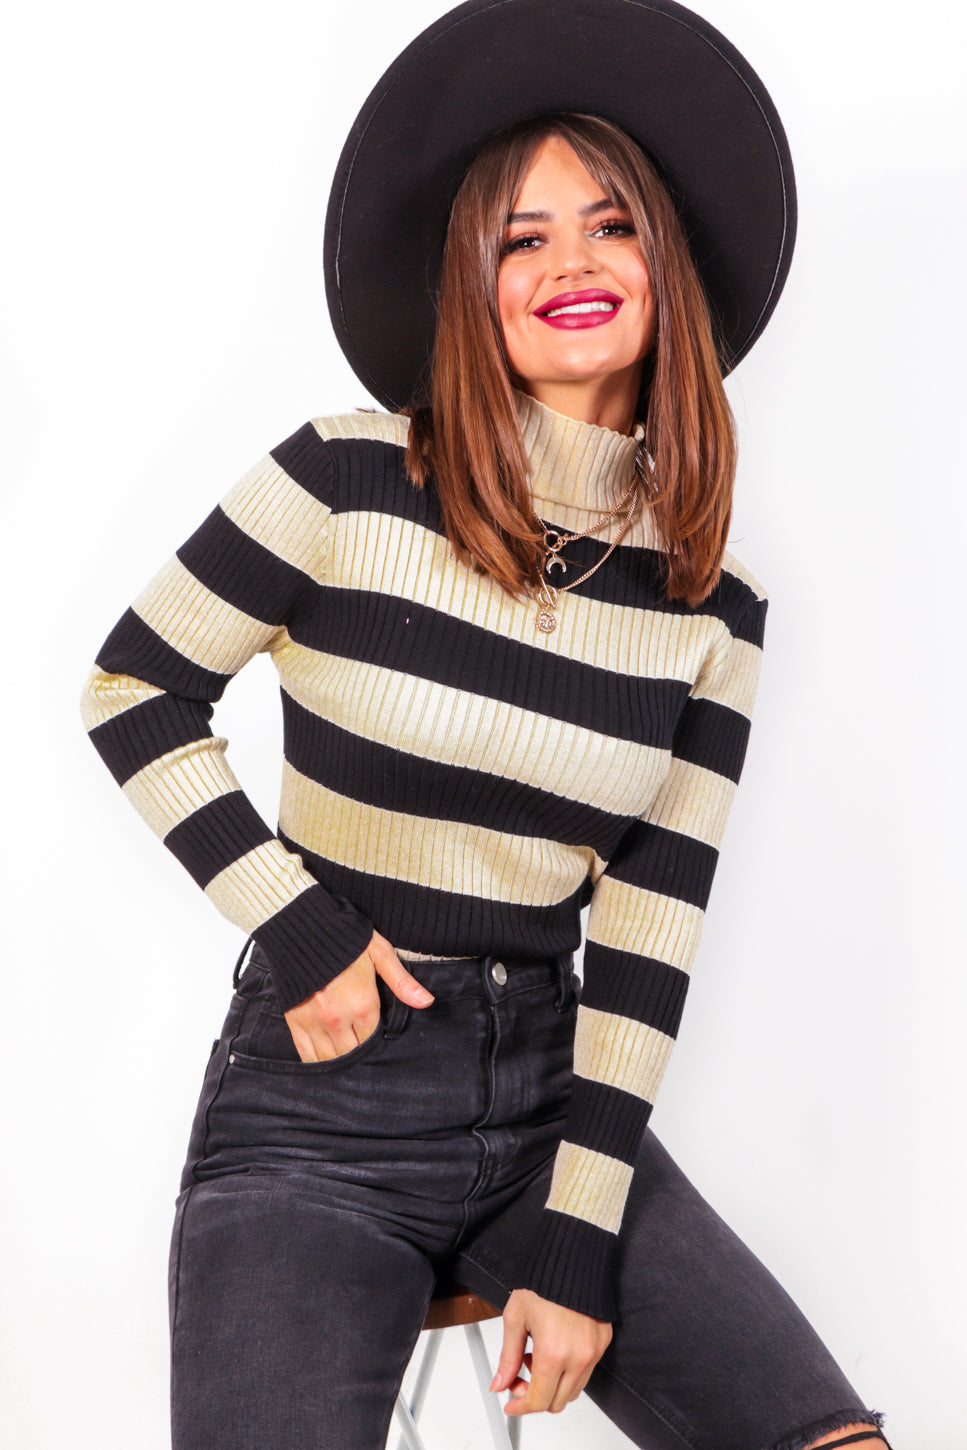 Be Stripe Back - Black Beige Ribbed Knit Top